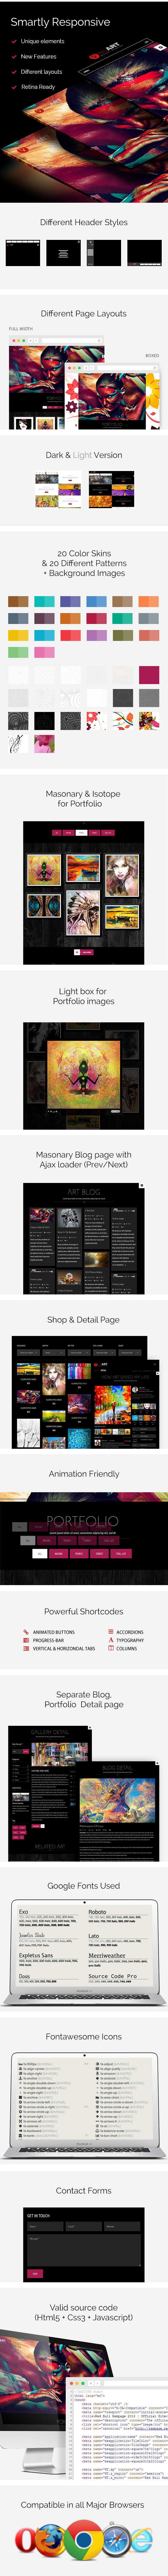 Red Art - Gallery and Photography HTML Template - 1